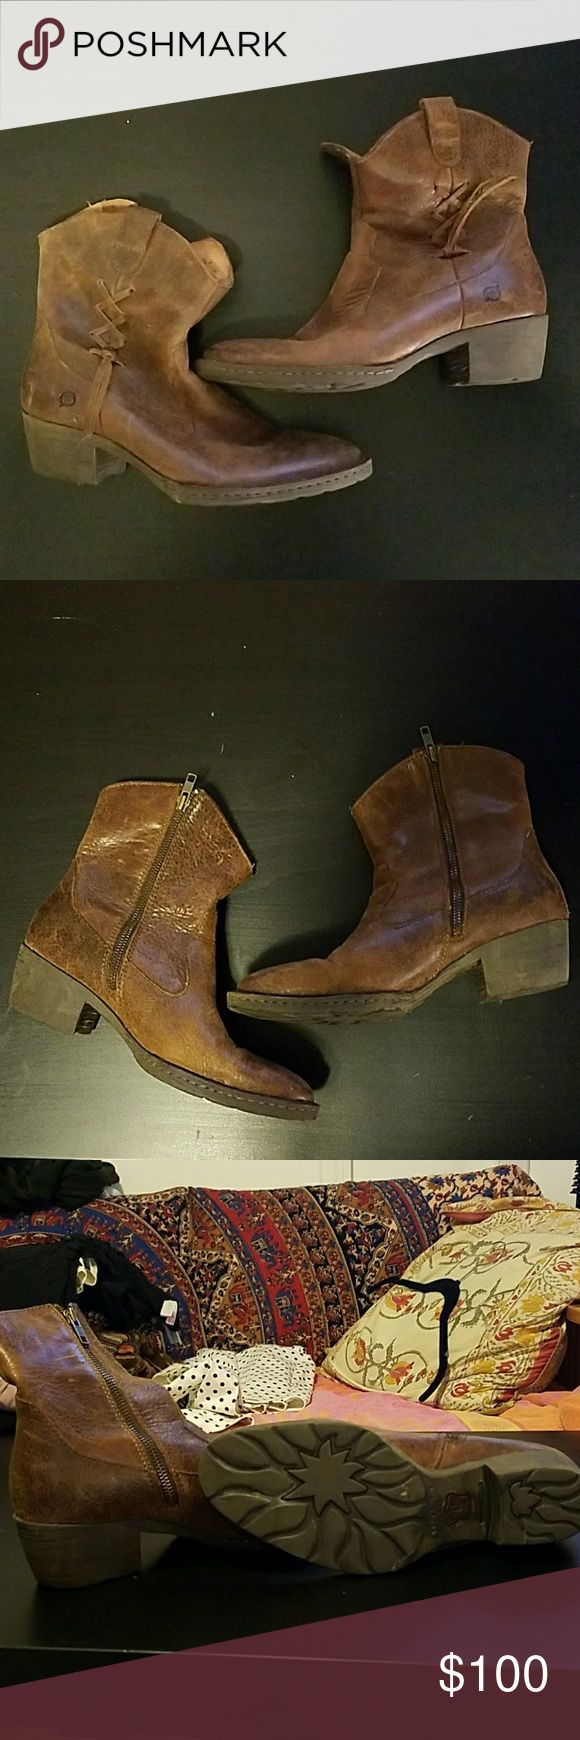 """Born booties size 8 /39 brown 1"""" heeled zip up barely worn! Born Shoes Ankle Boots & Booties"""